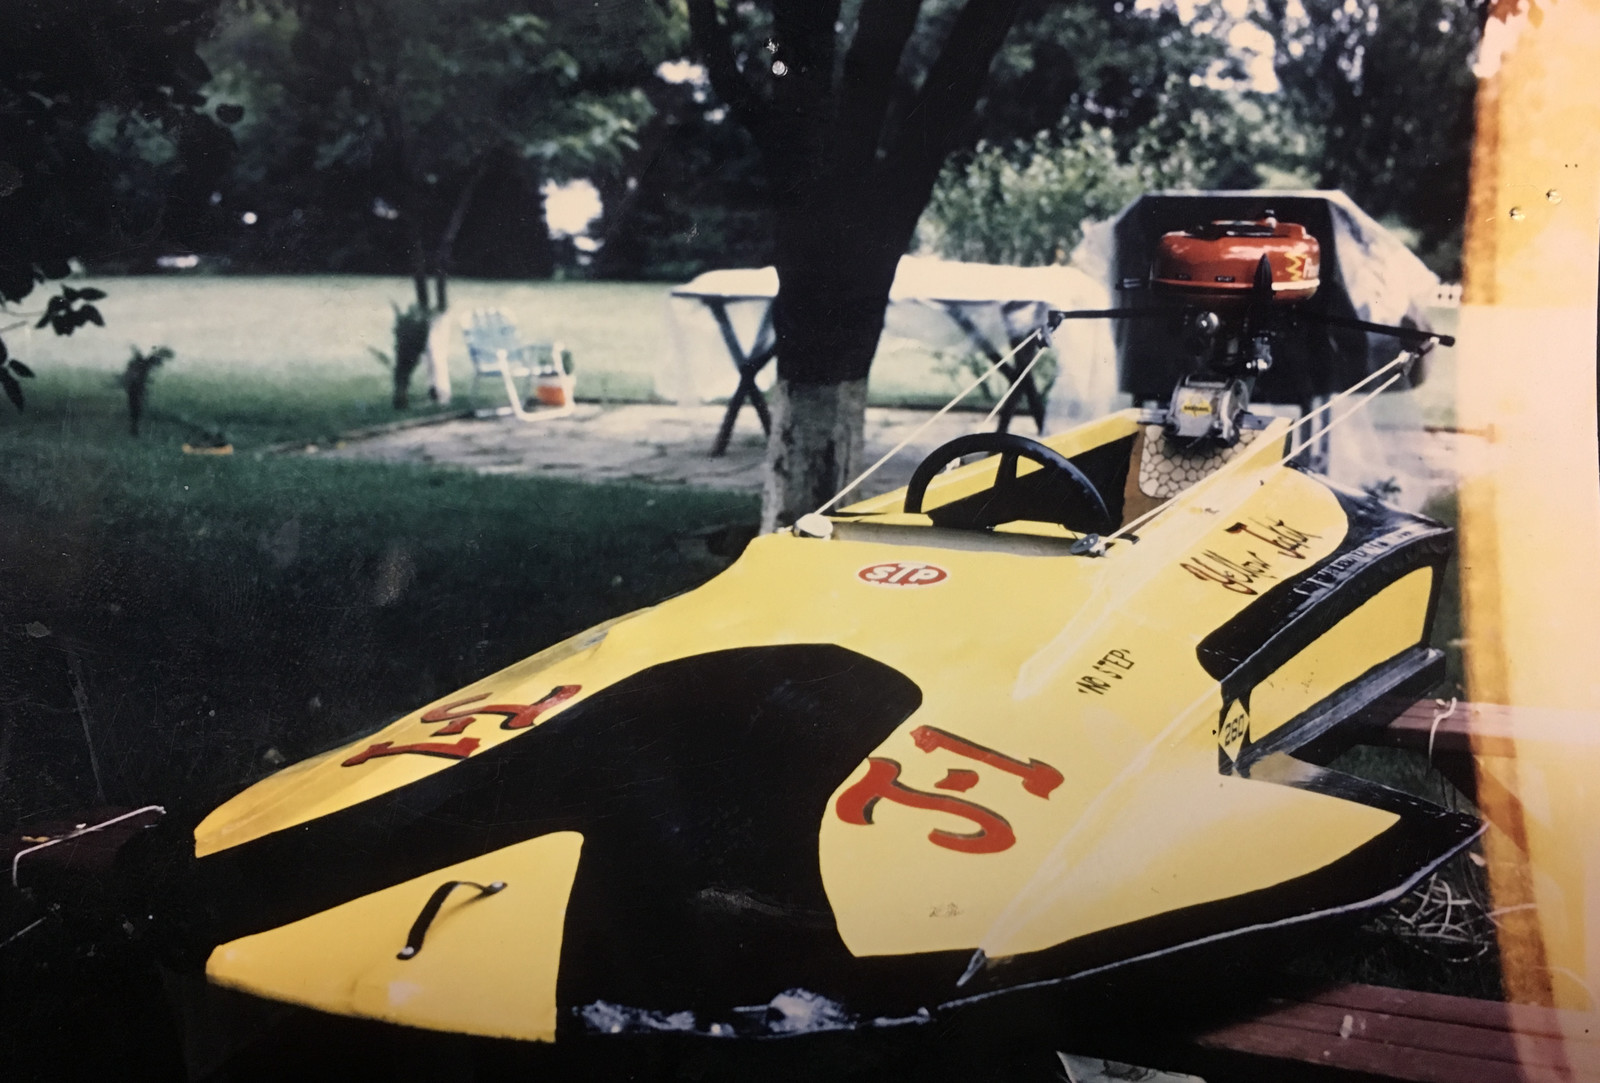 What did you make in middle school shop class? This is what Jeff Steber made; an 8-foot hydroplane out of plywood.